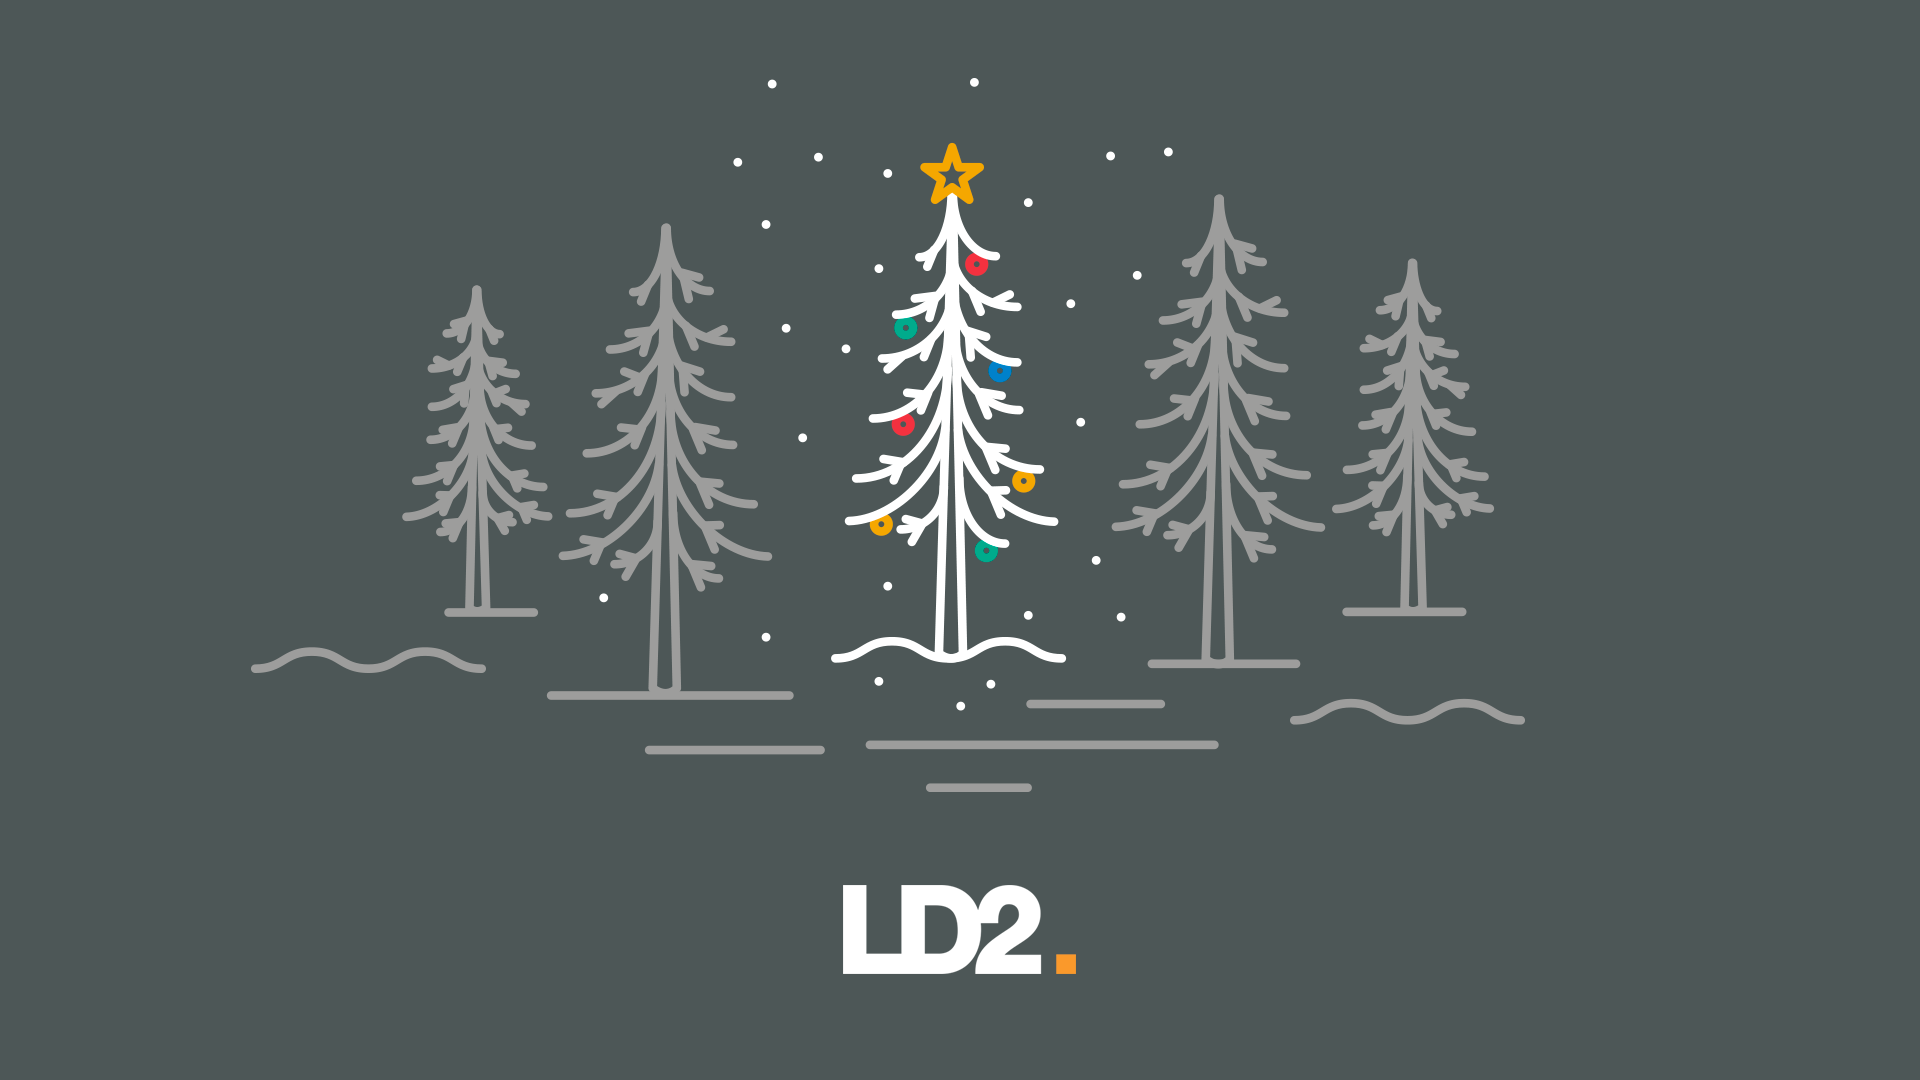 Merry Christmas from LD2 - 2017